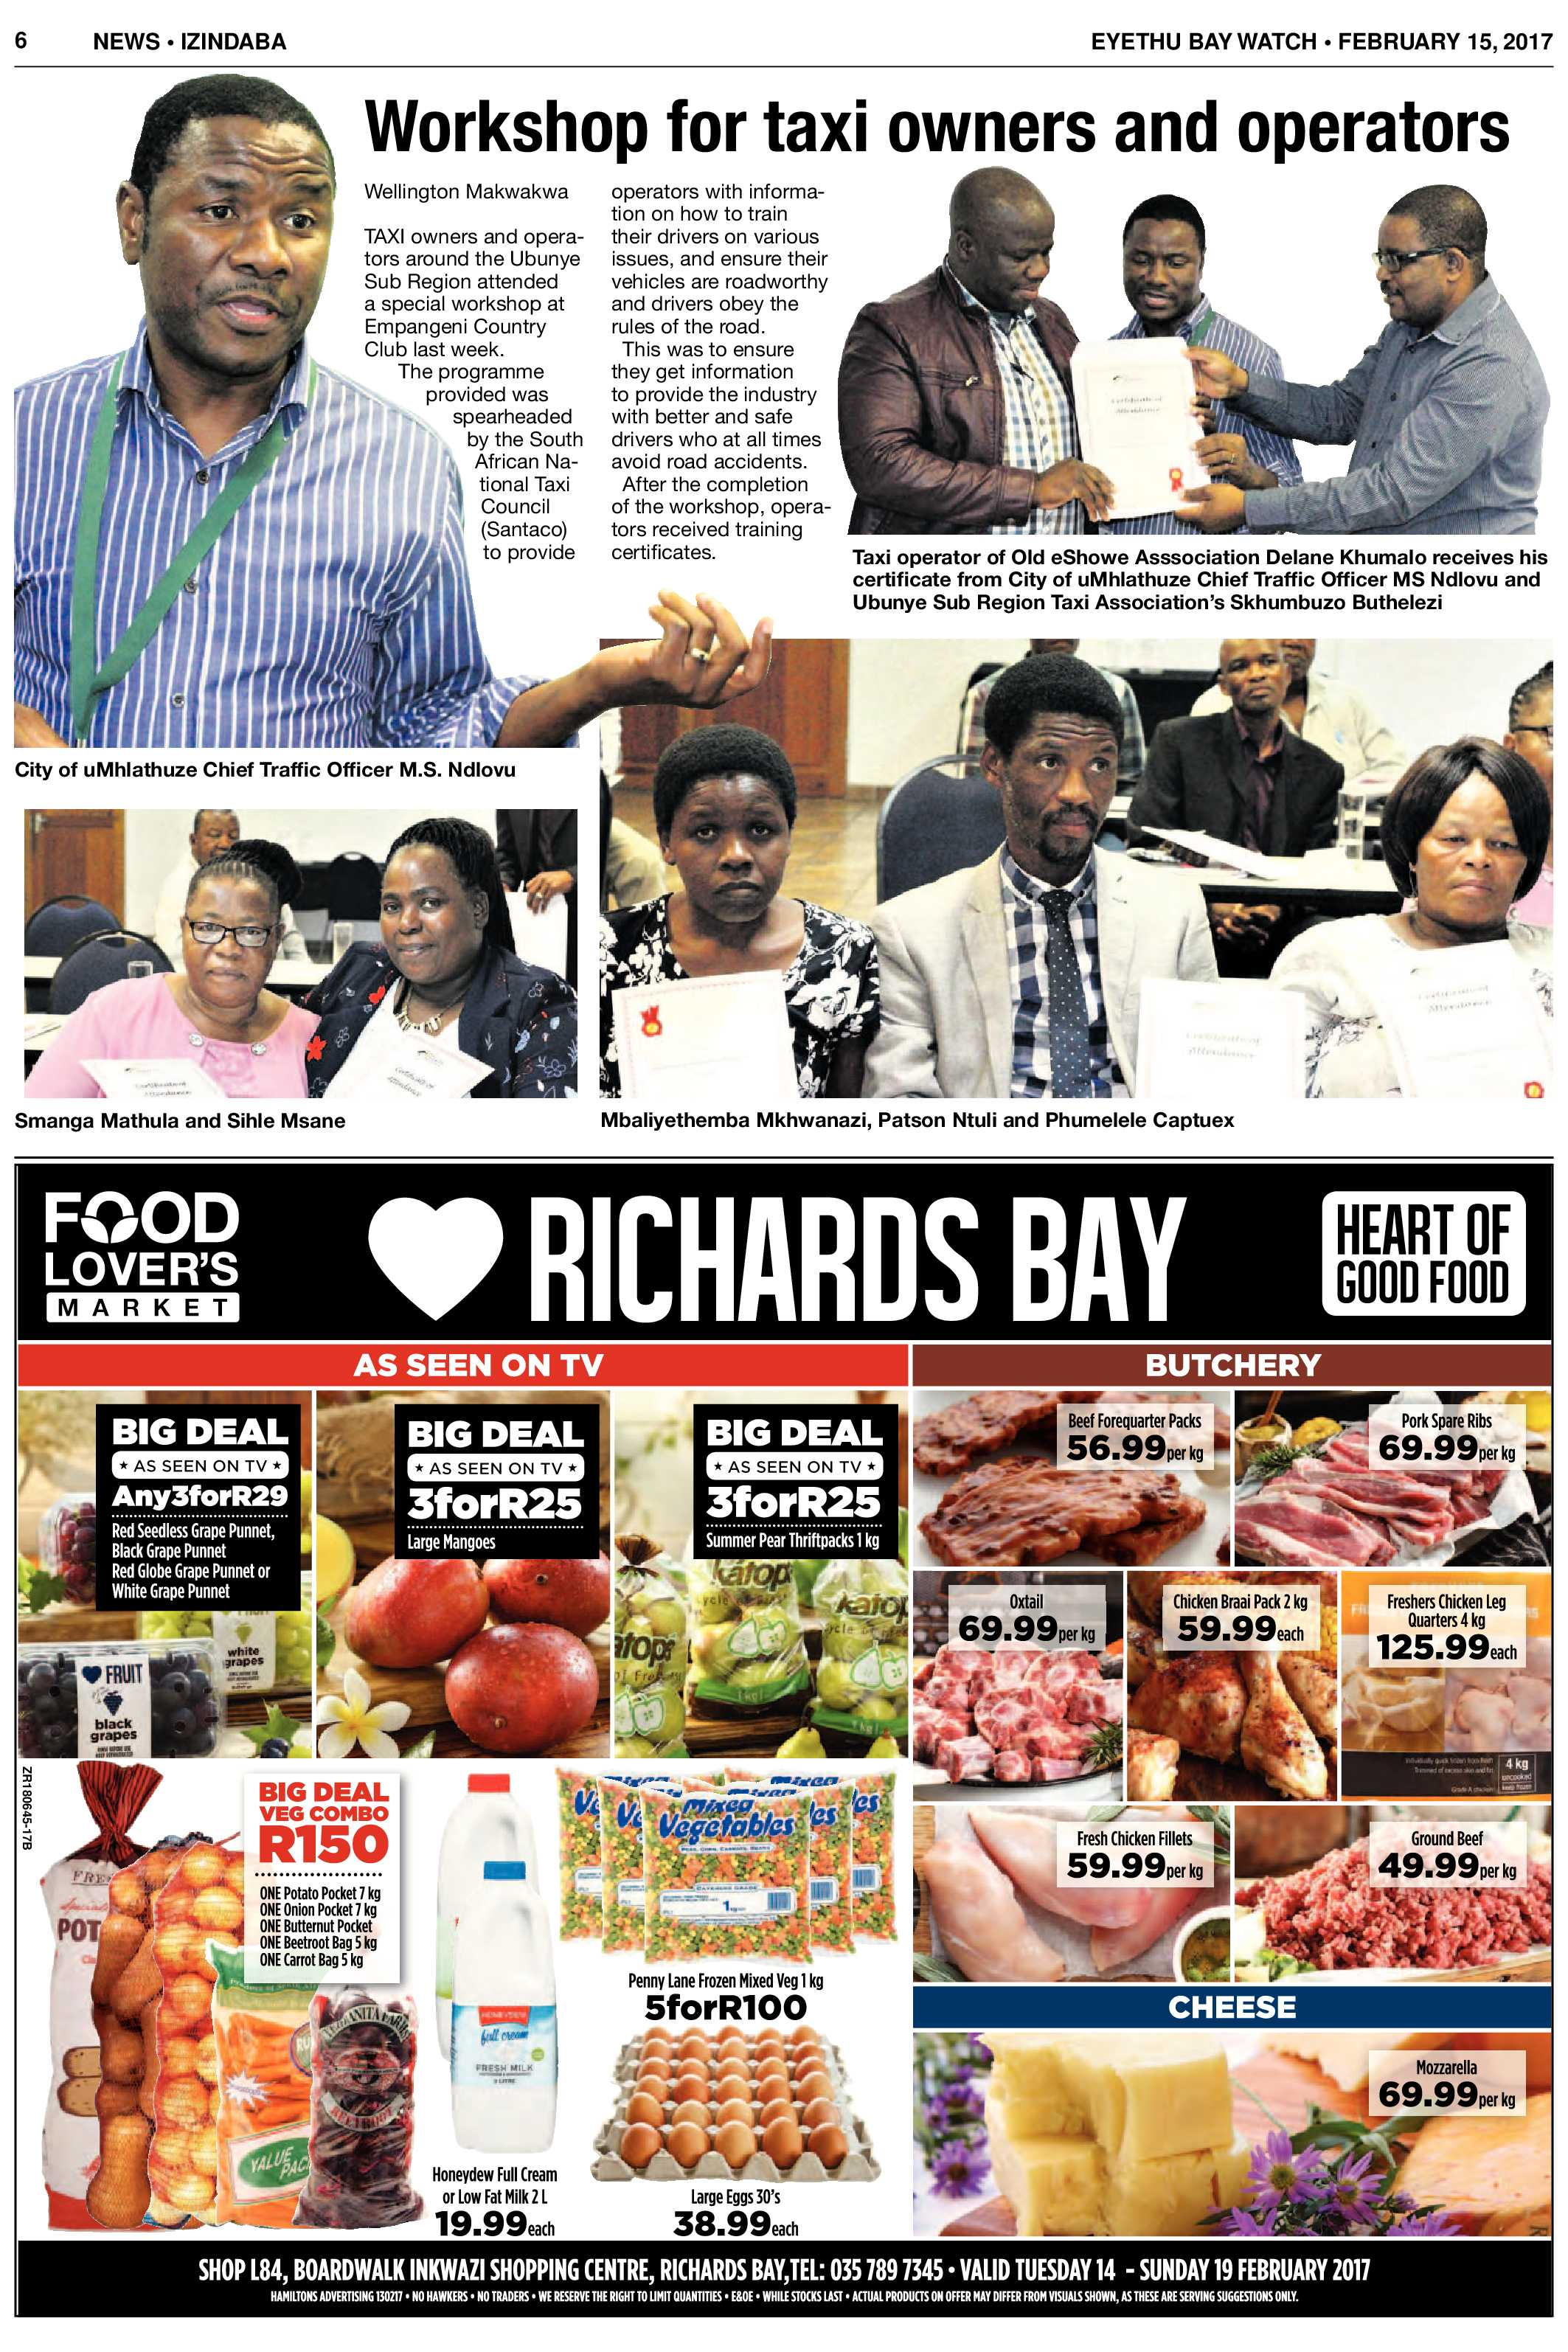 eyethu-baywatch-15-february-epapers-page-6